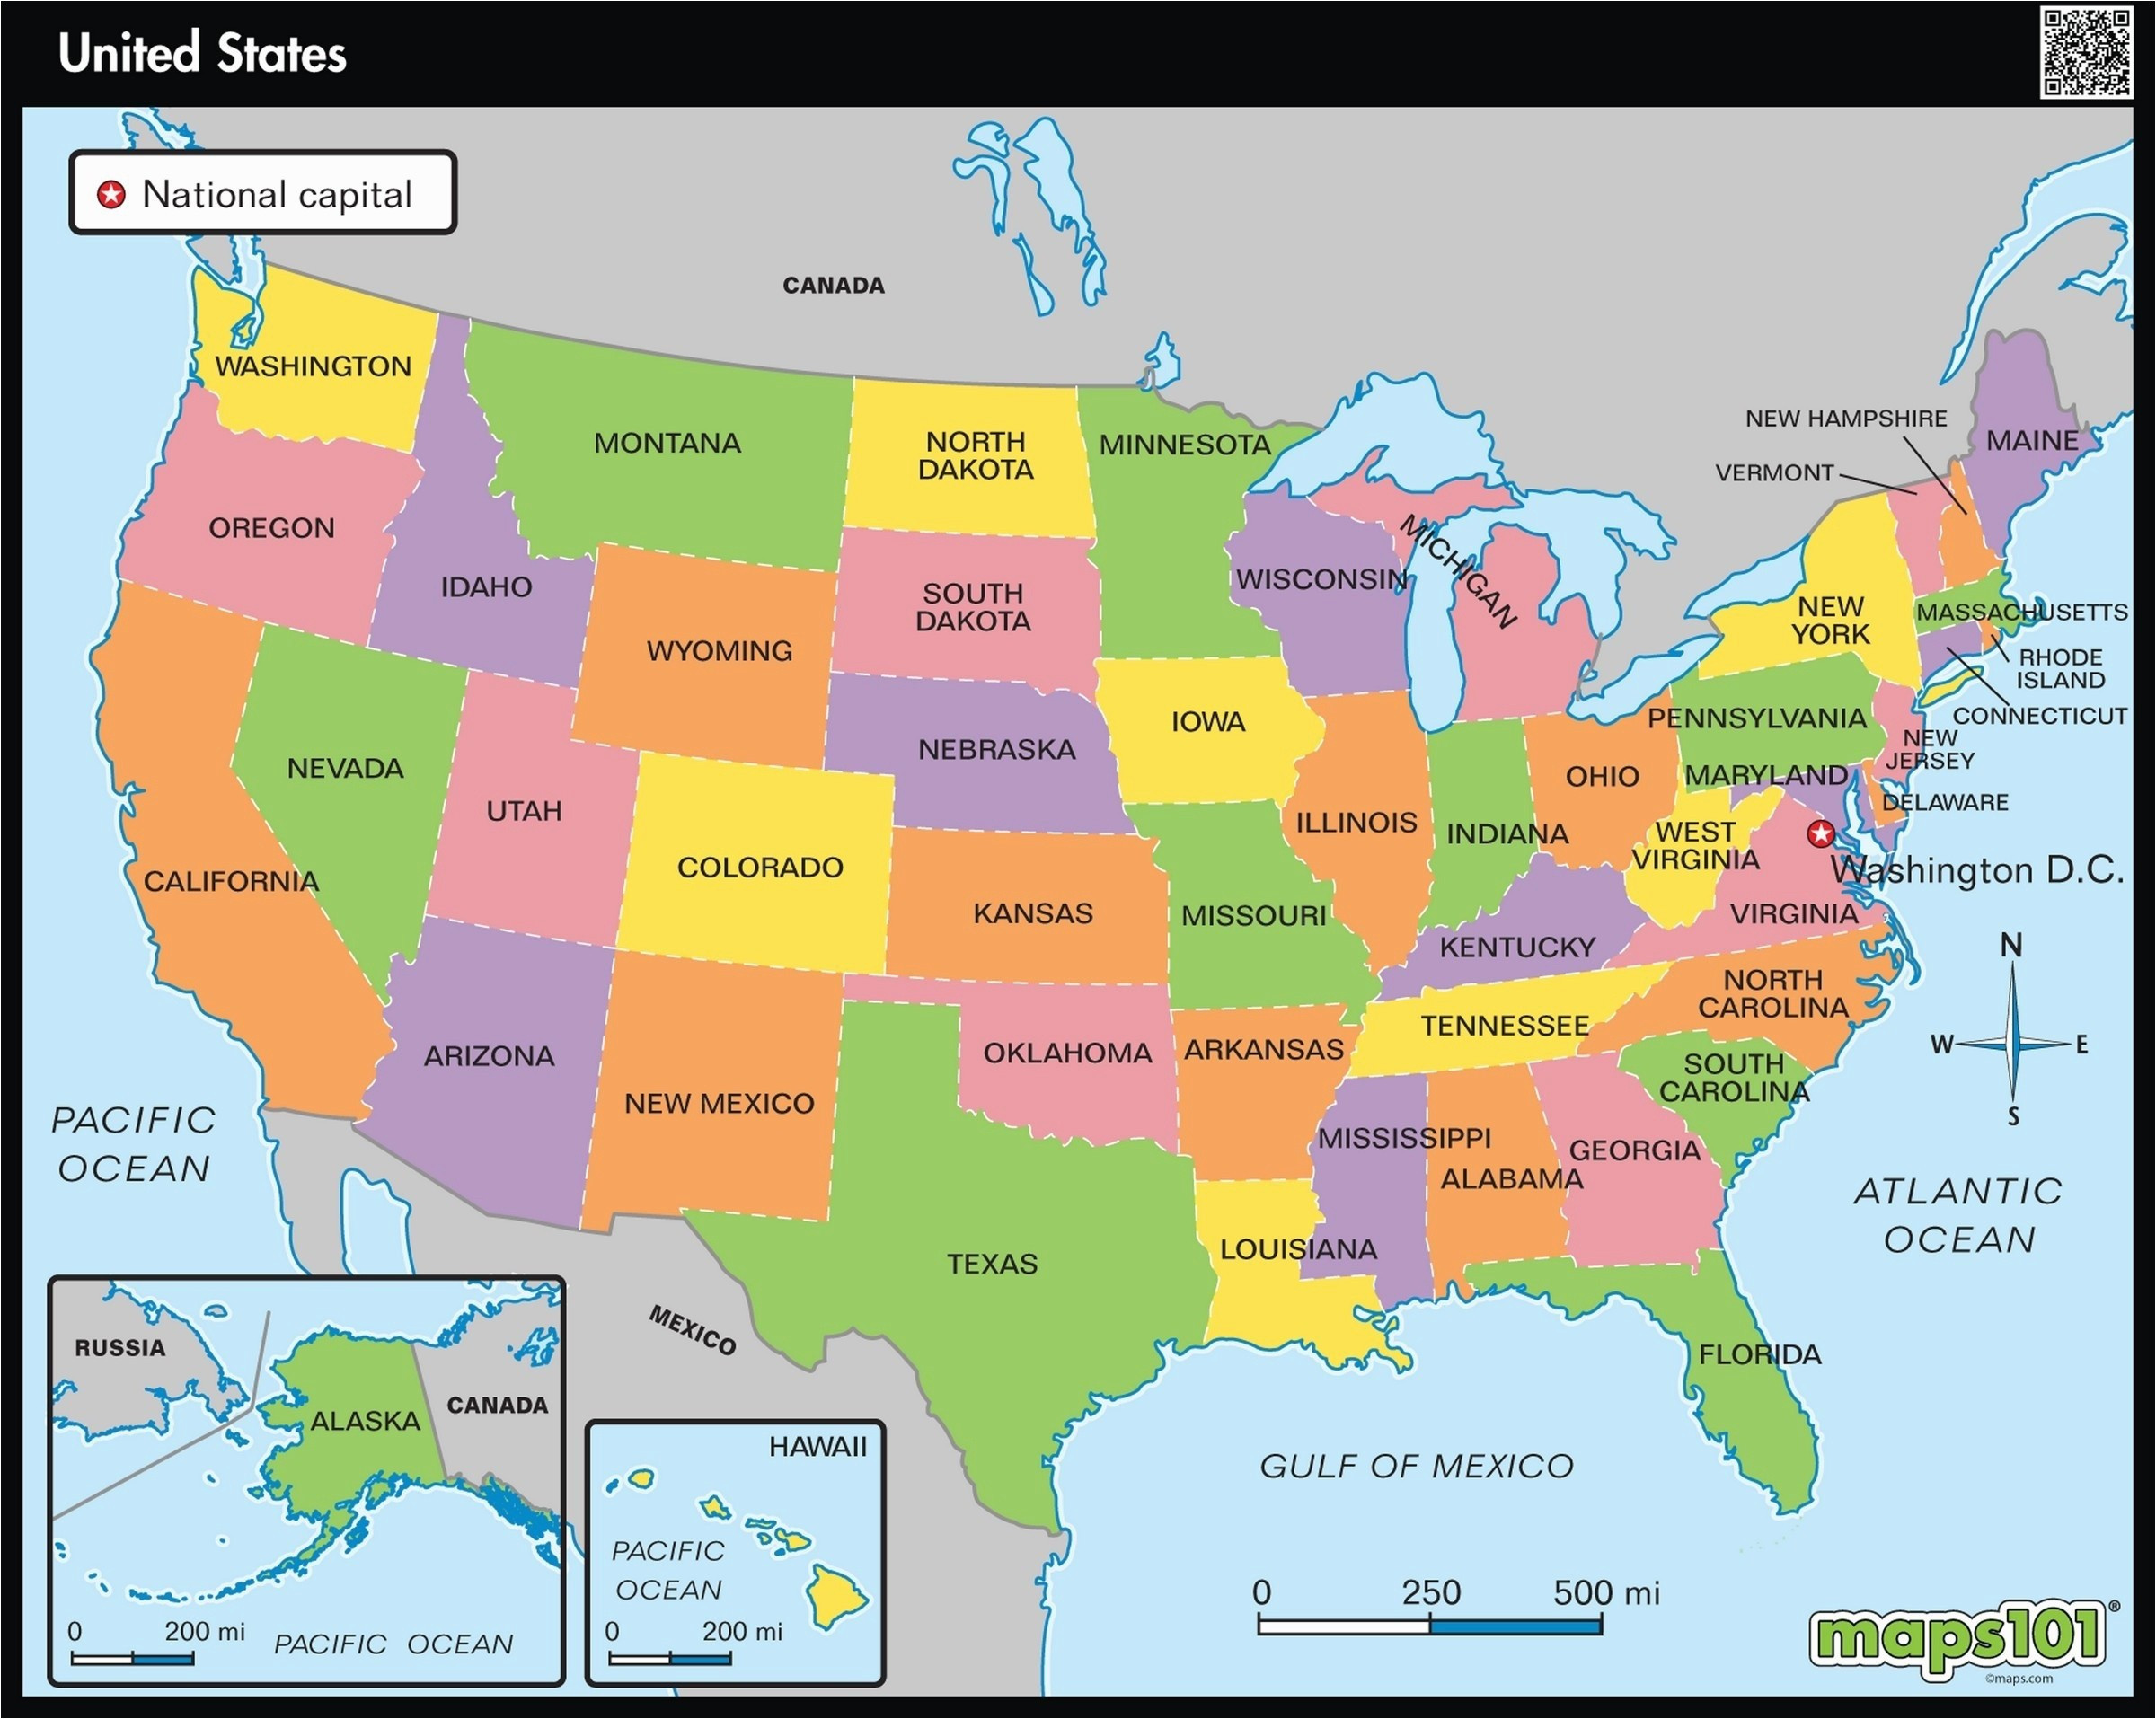 10 Inspirational Printable Map Of the United States with State Names